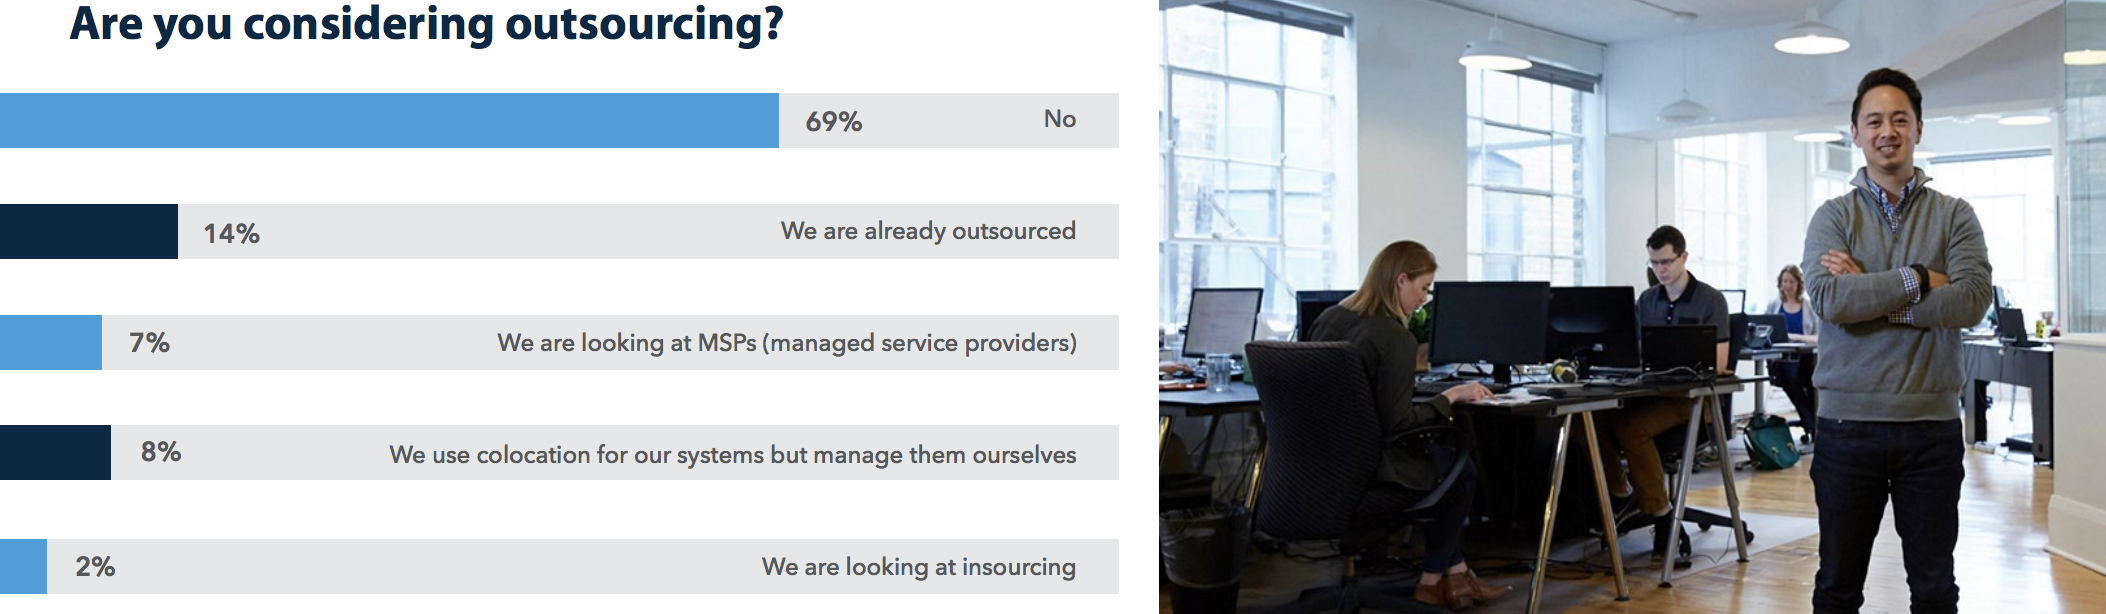 outsourcing consideration bar graph